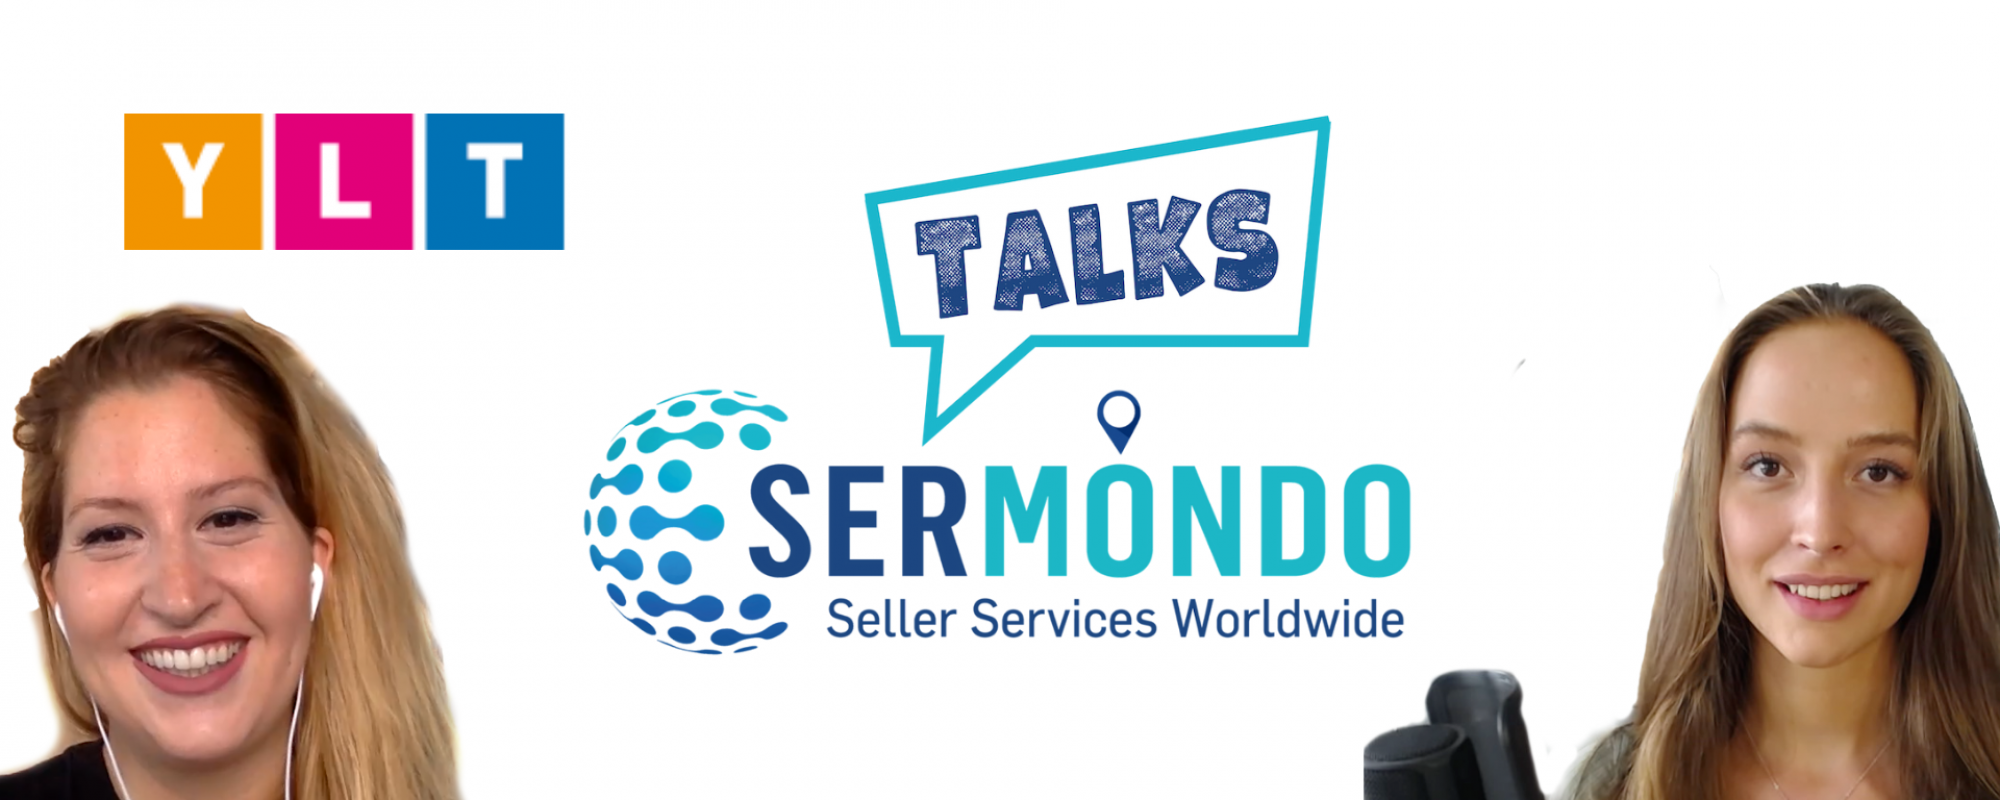 Jana Krekic Kristina Mertens on Sermondo Talks